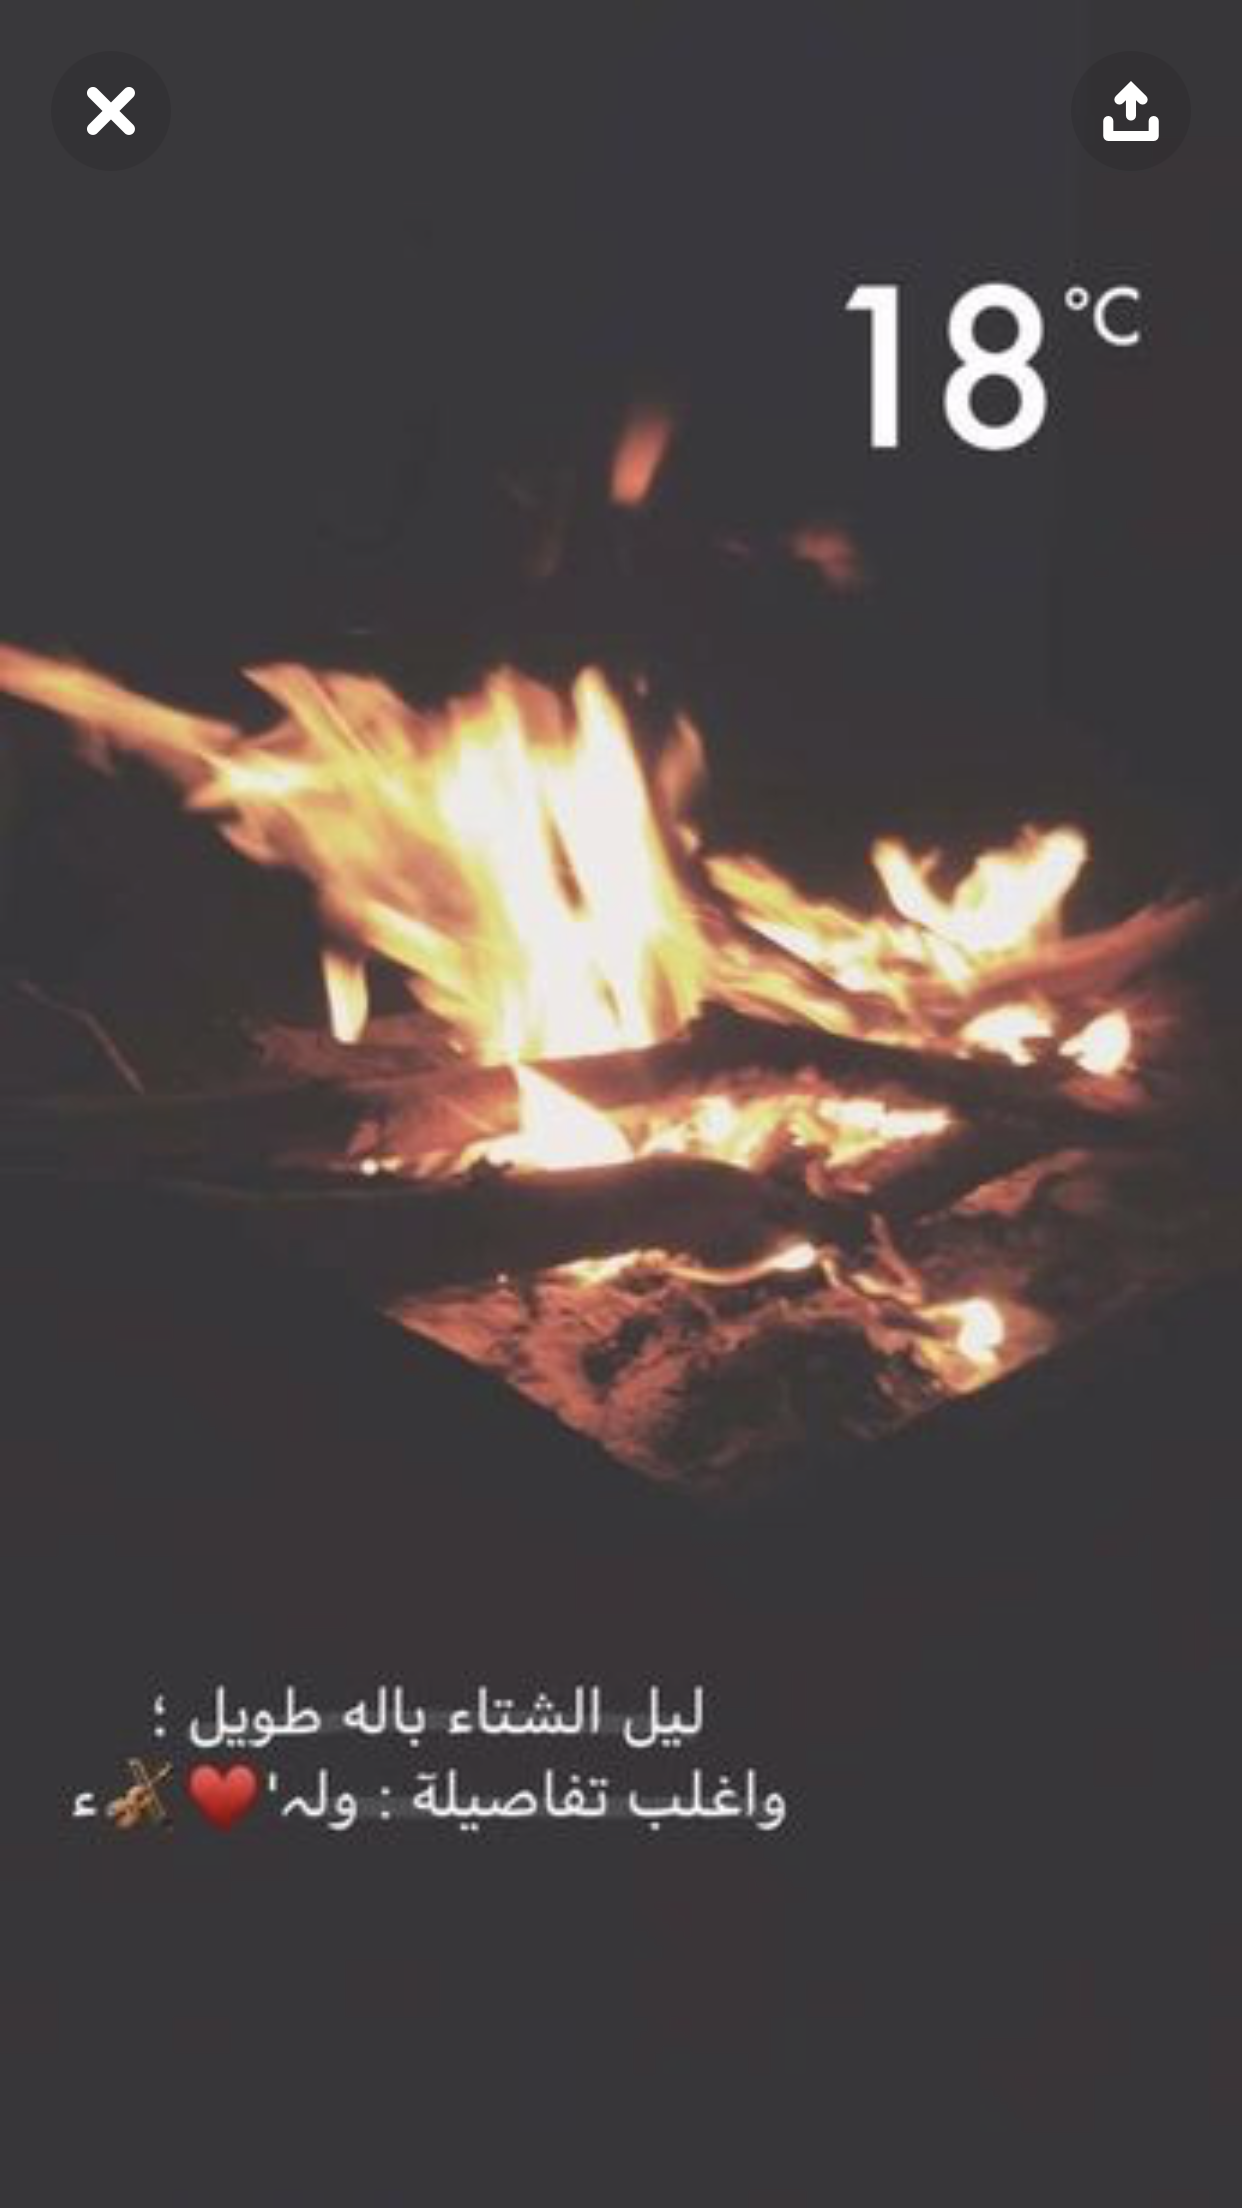 Pin By Hadeelalteer On عادت لنا الحياة Love Quotes Wallpaper Cover Photo Quotes Islamic Love Quotes